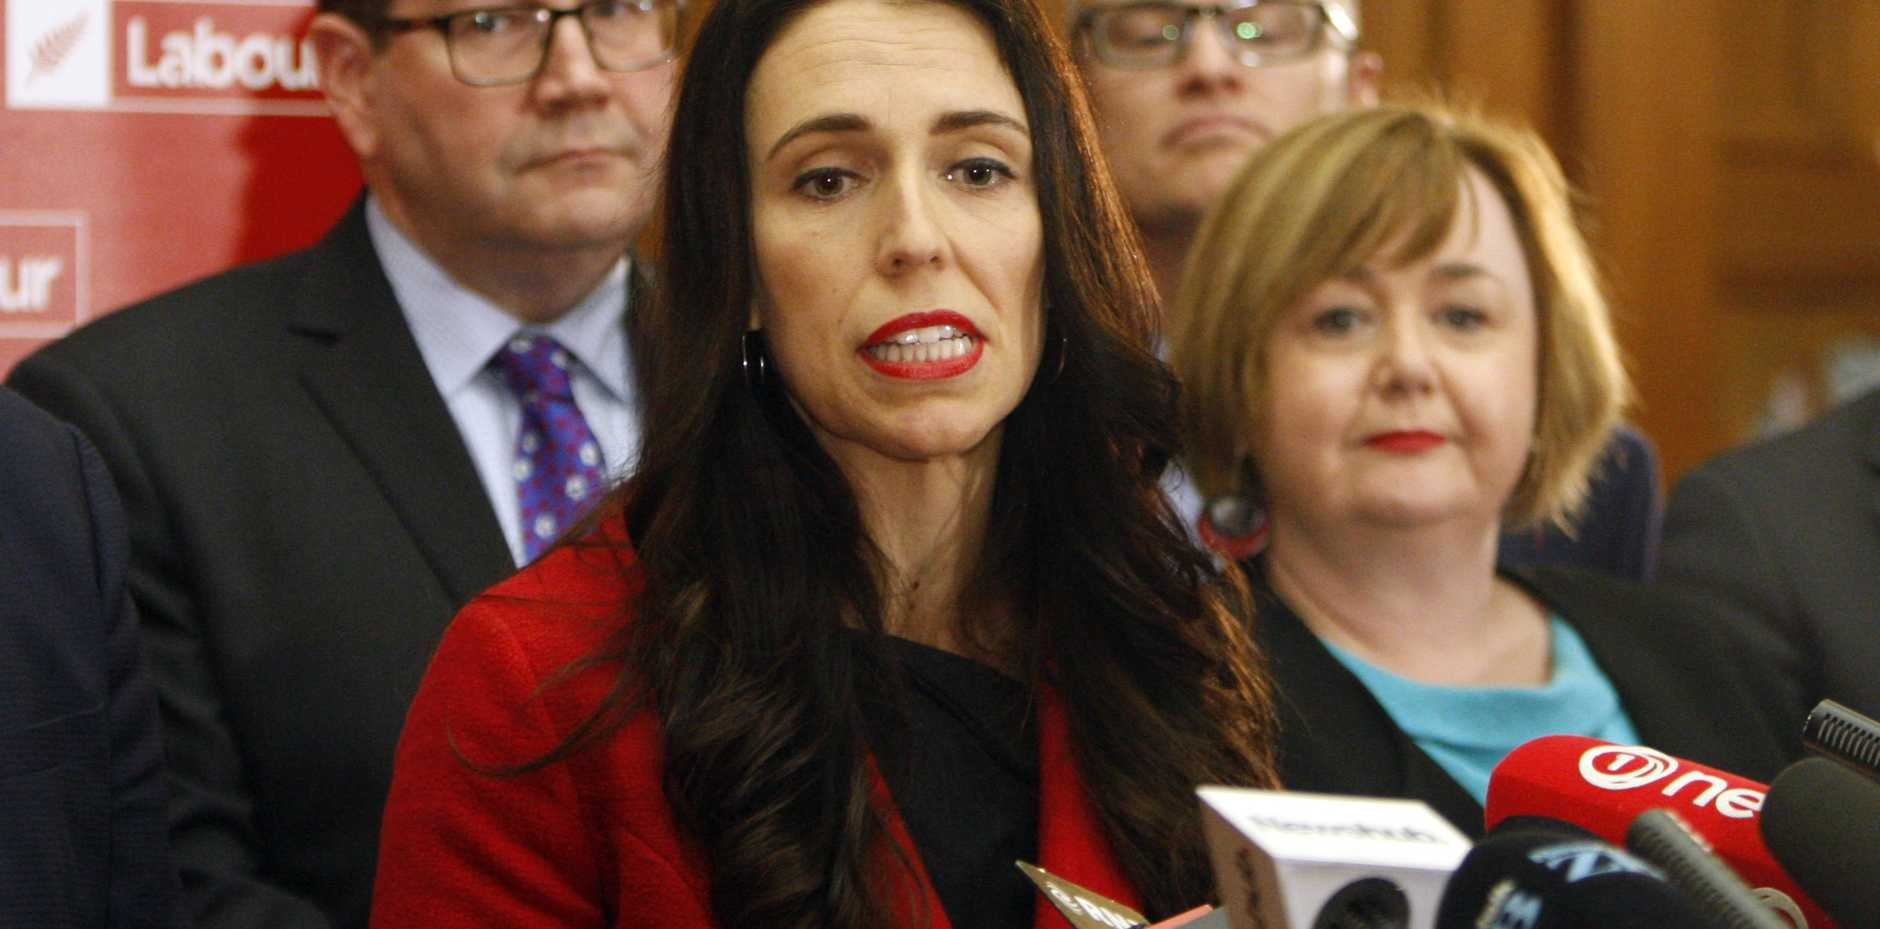 New Zealand Labour Party leader Jacinda Ardern, center, and deputy leader Kelvin Davis, left, answer questions from reporters on Tuesday, Aug. 1, 2017, in Wellington, New Zealand. Former leader Andrew Little announced he was quitting earlier in the day, as the party tries to overcome recent dismal polling seven weeks before the general election. Some believe Ardern will bring more charisma to the